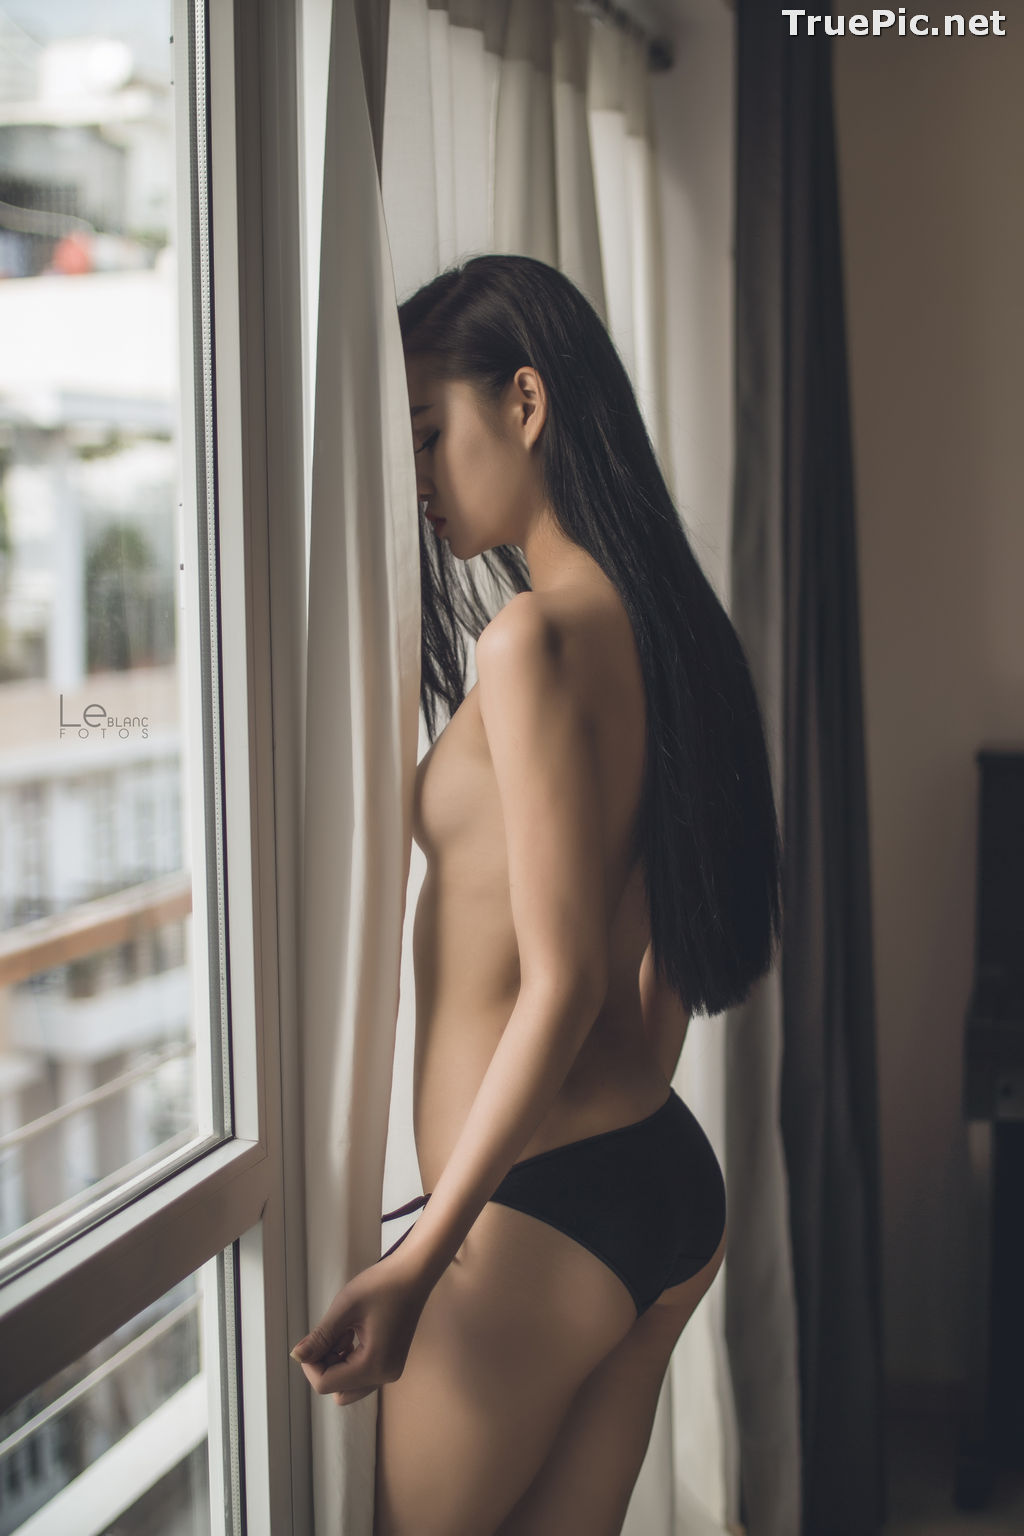 Image Vietnamese Beauties With Lingerie and Bikini – Photo by Le Blanc Studio #13 - TruePic.net - Picture-10